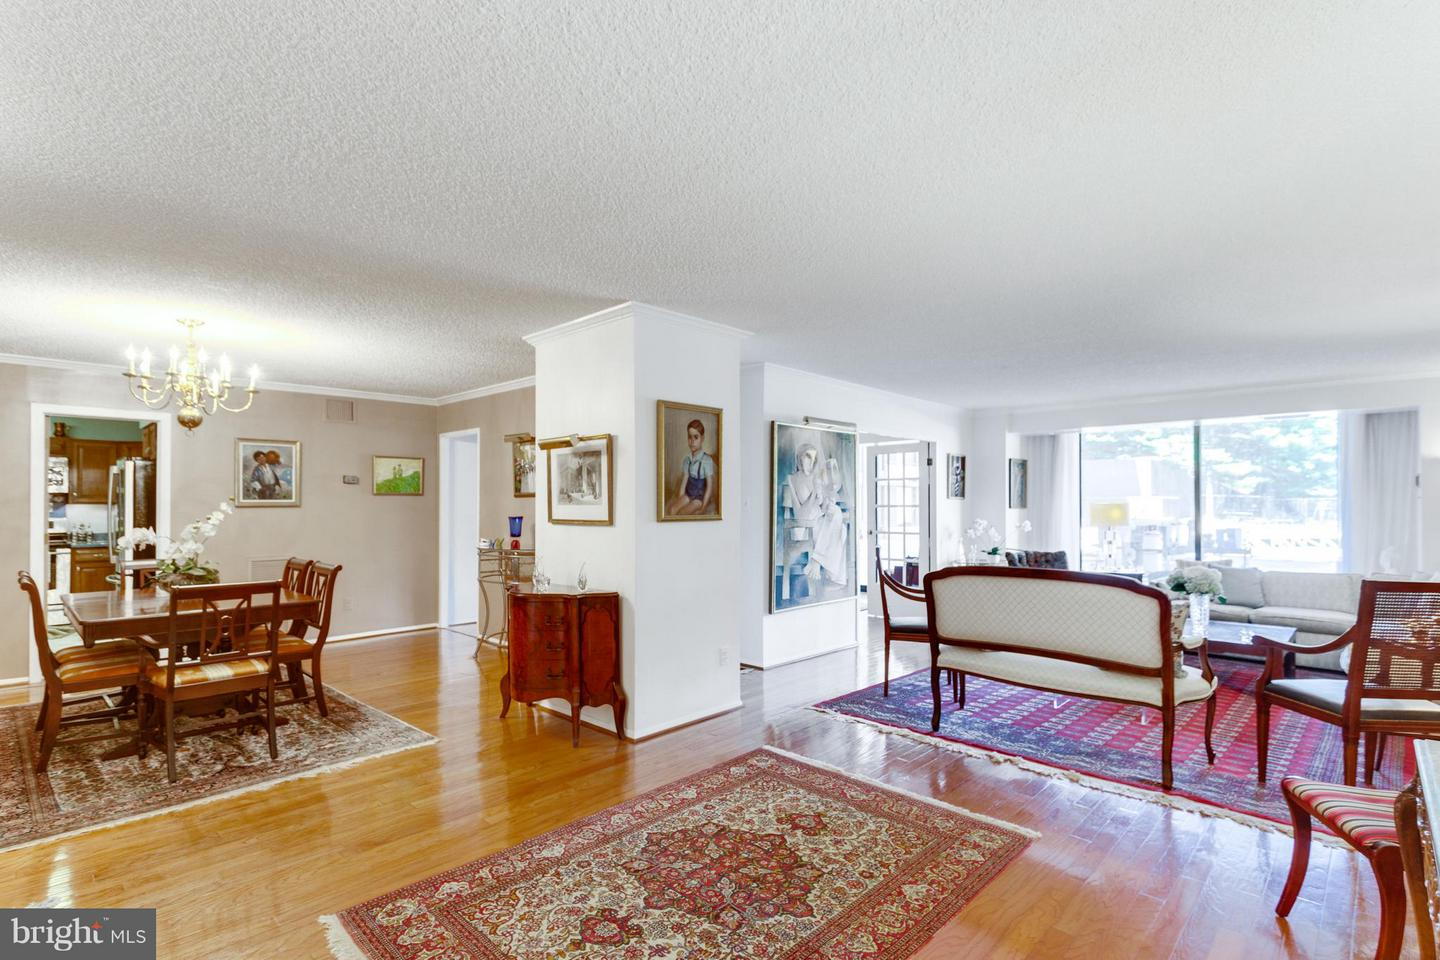 Single Family Home for Sale at 1800 Old Meadow Rd #108 1800 Old Meadow Rd #108 McLean, Virginia 22102 United States